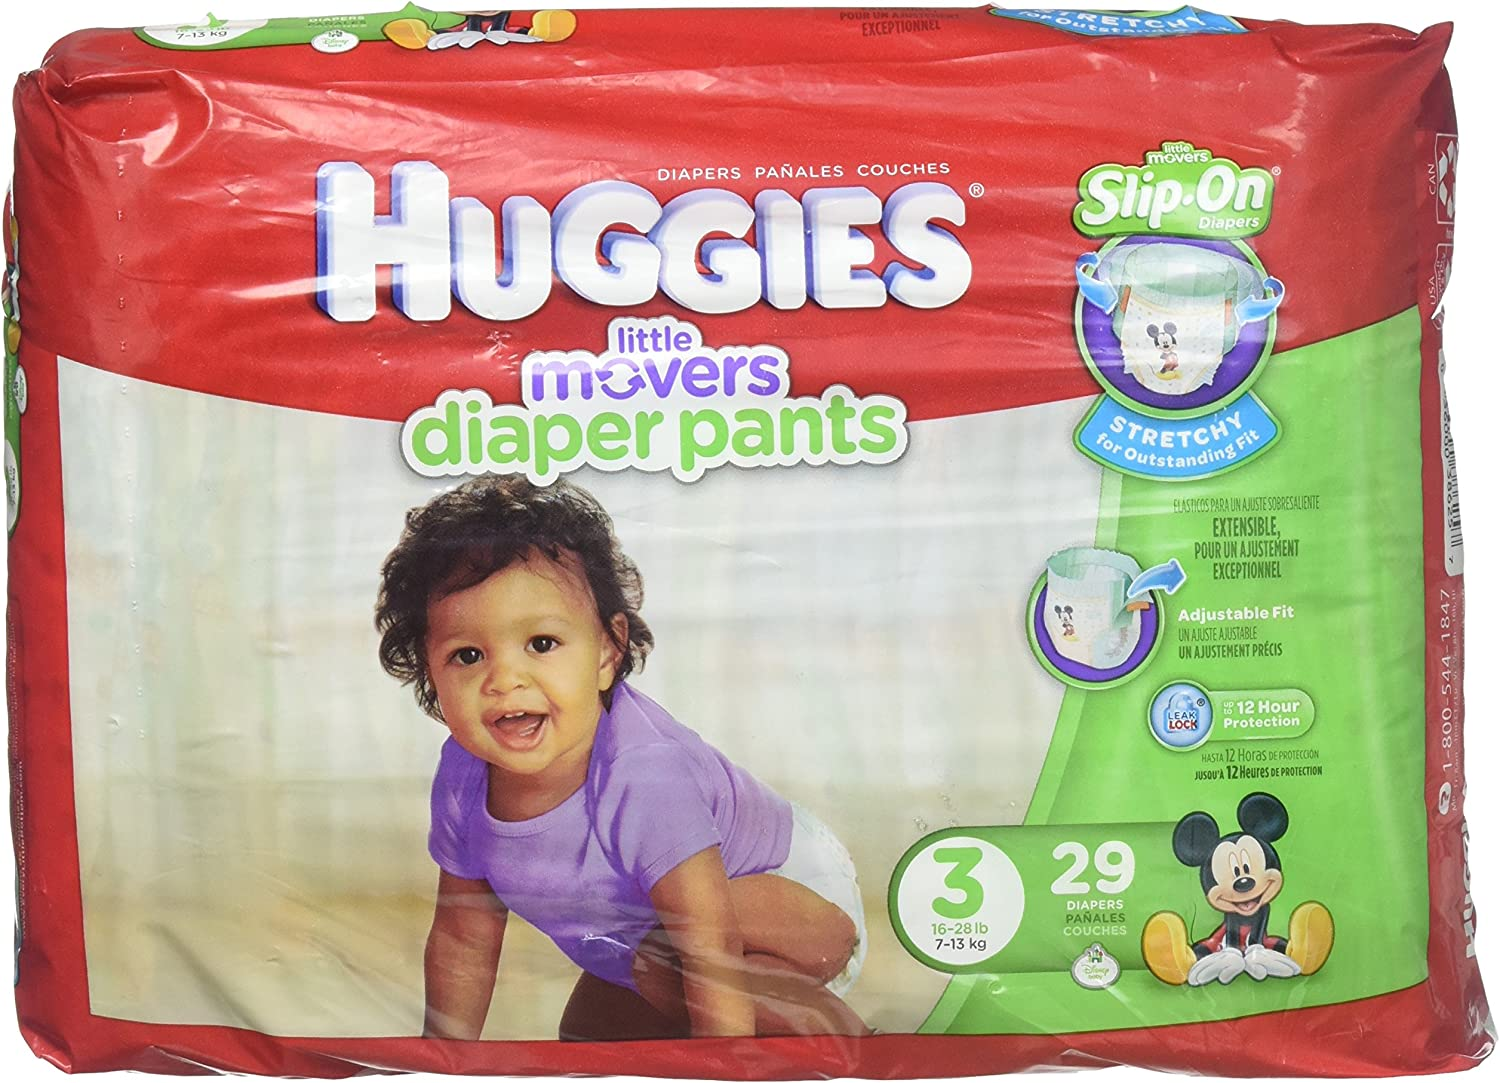 Huggies Little Movers Slip-On Diaper Pants - Size 3 16-28lbs(7-13kg)29 count